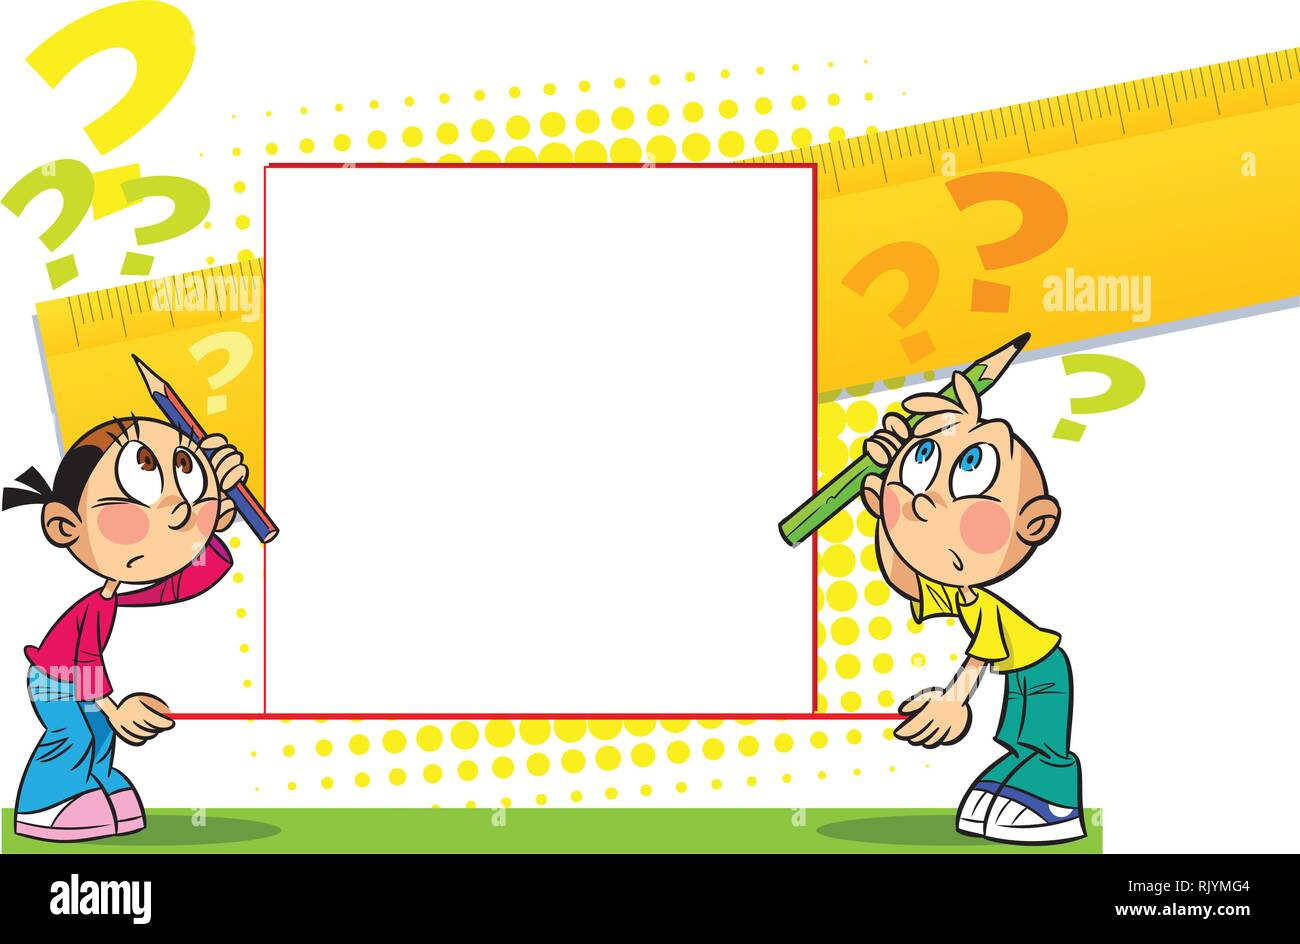 The illustration shows a boy and girl with banner. Illustration done in cartoon style, there is block for text. - Stock Image